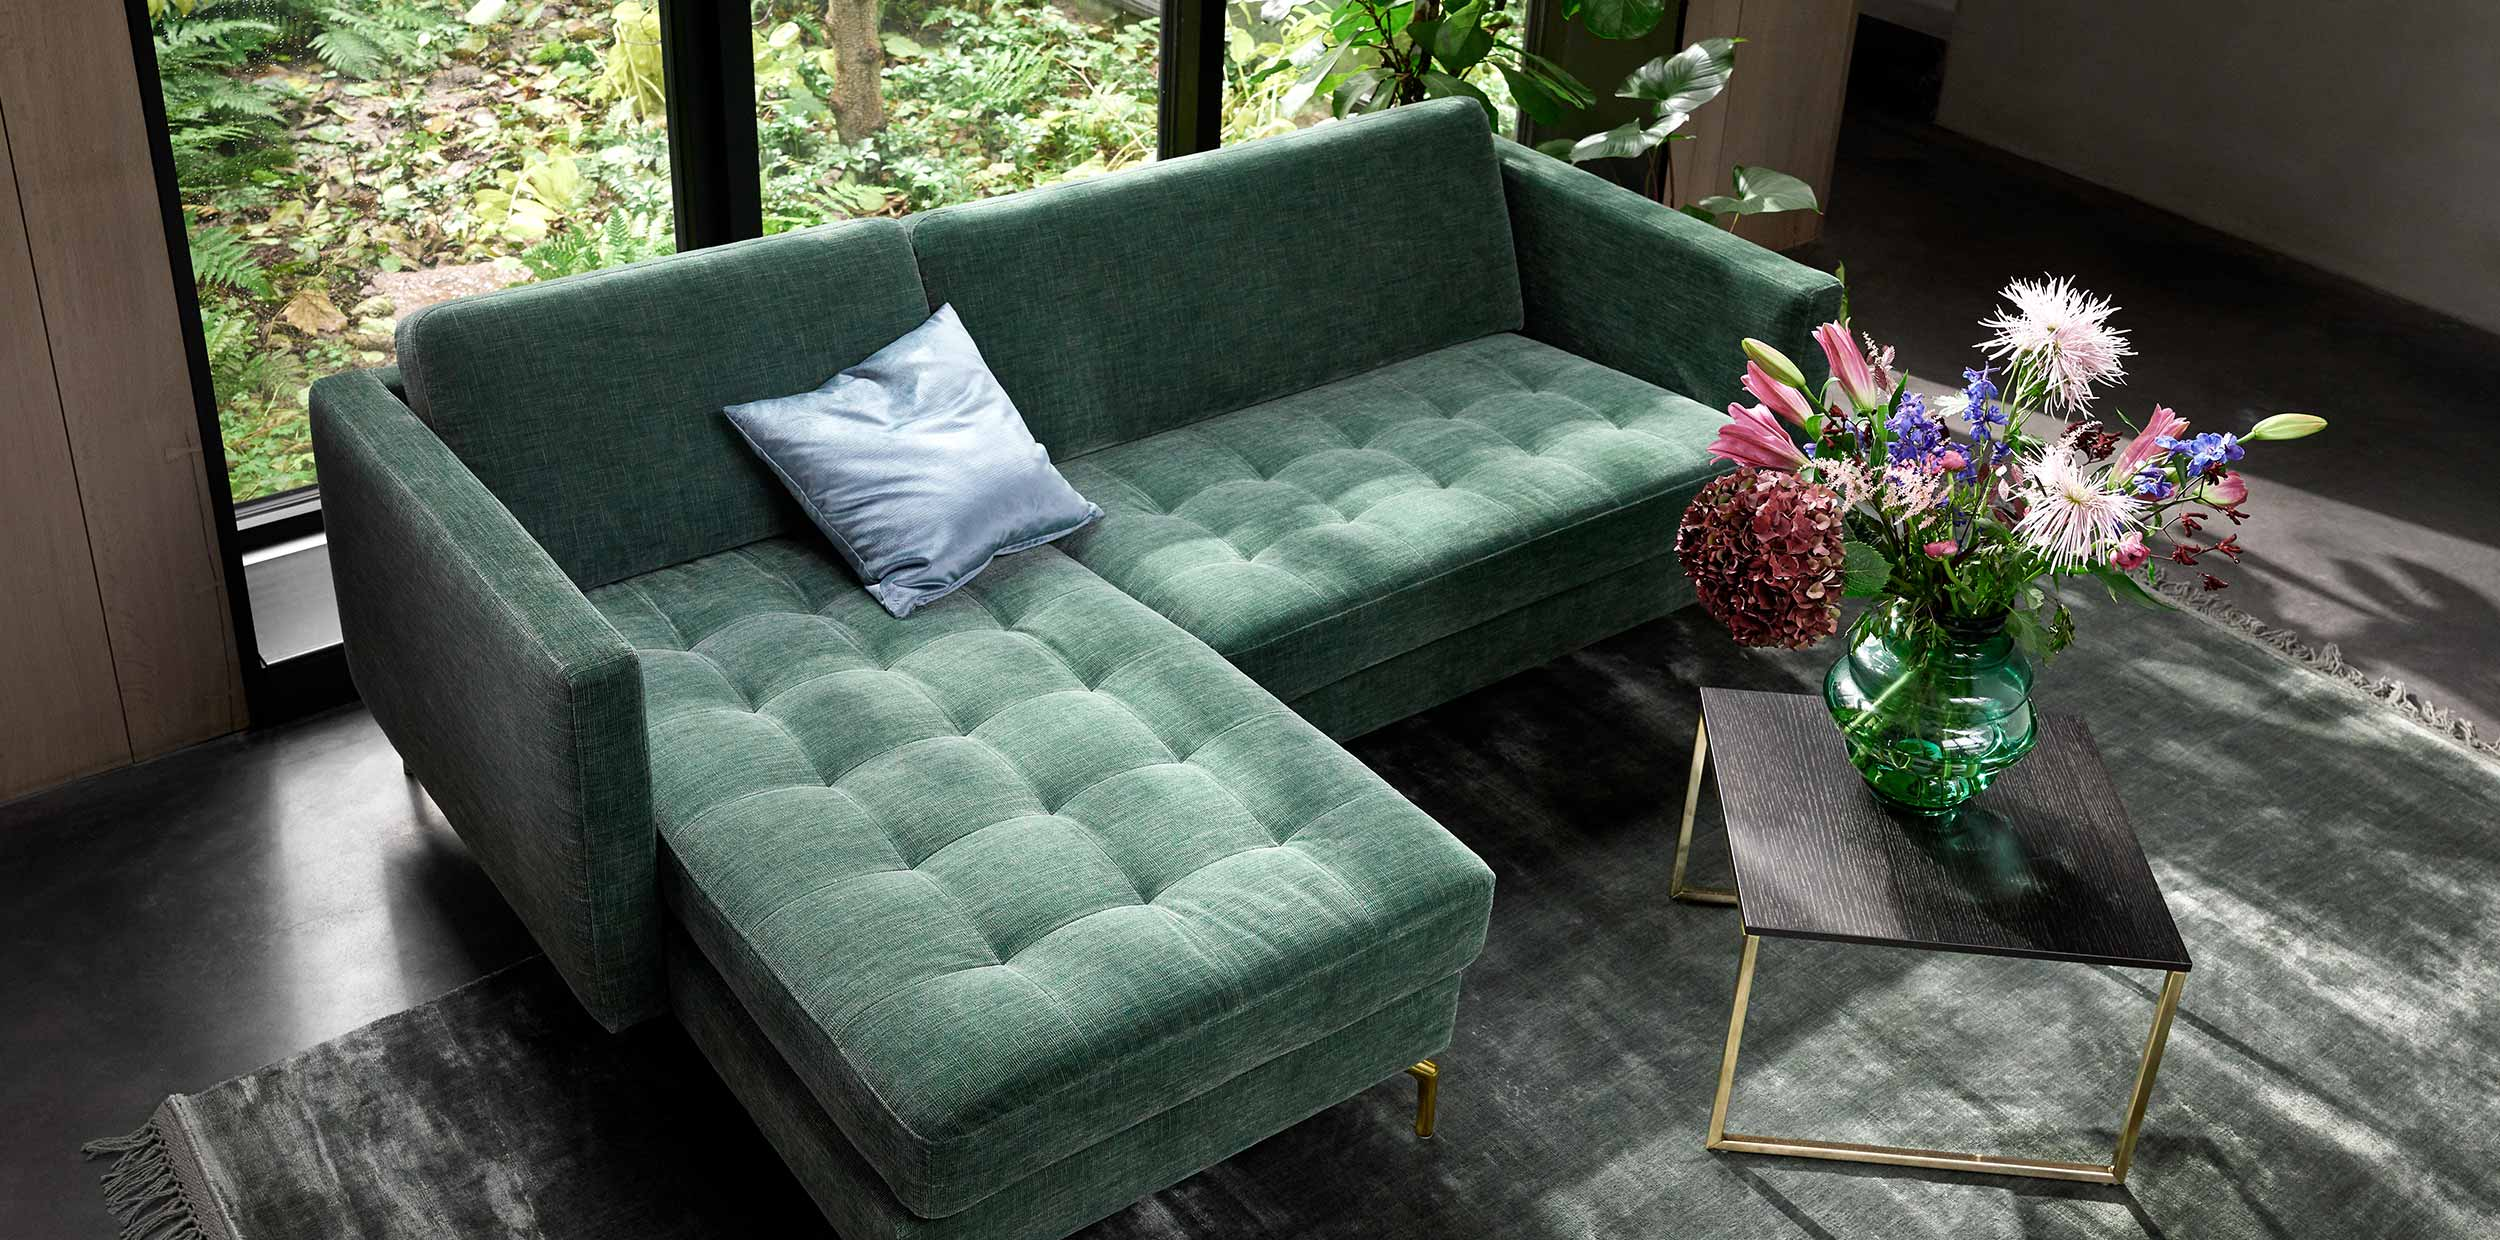 Green Osaka chaiselong sofa and table with flowers